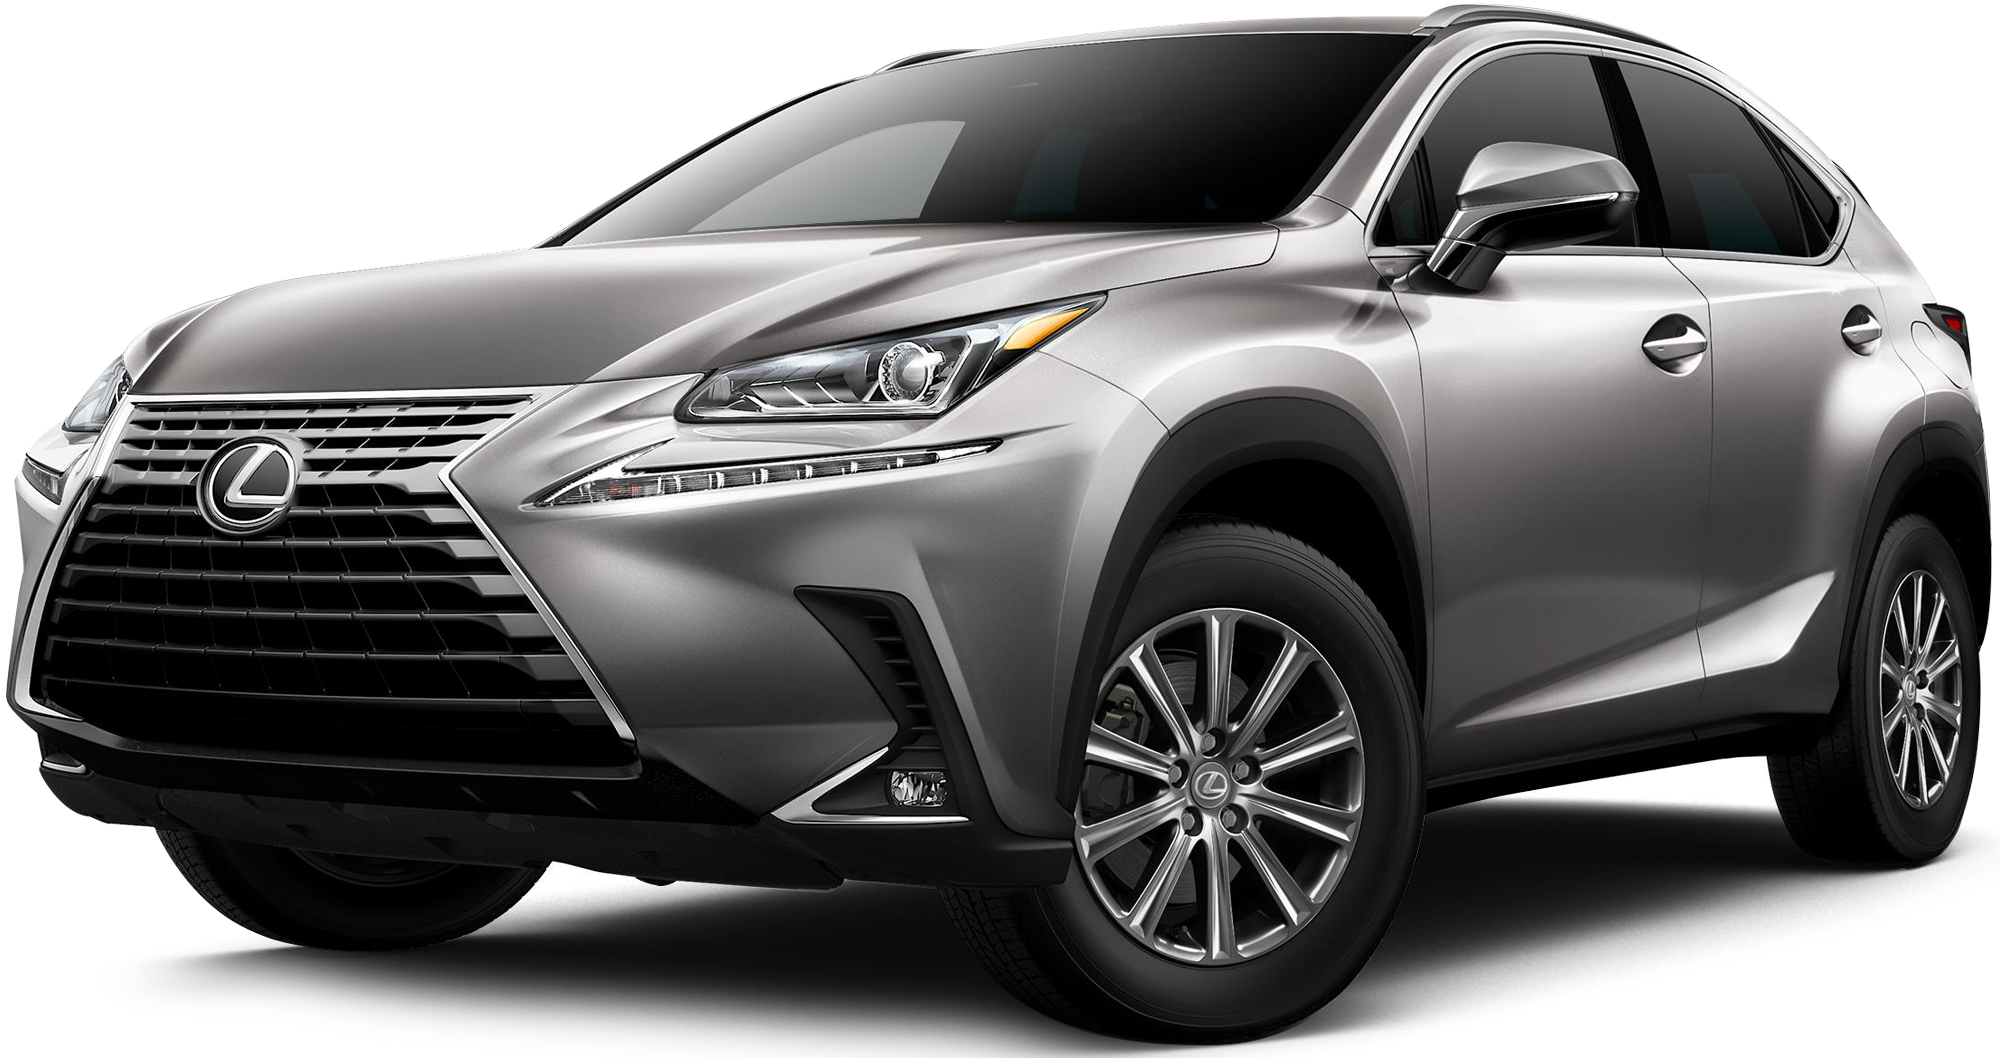 2020 lexus nx 300 incentives, specials & offers in seaside ca